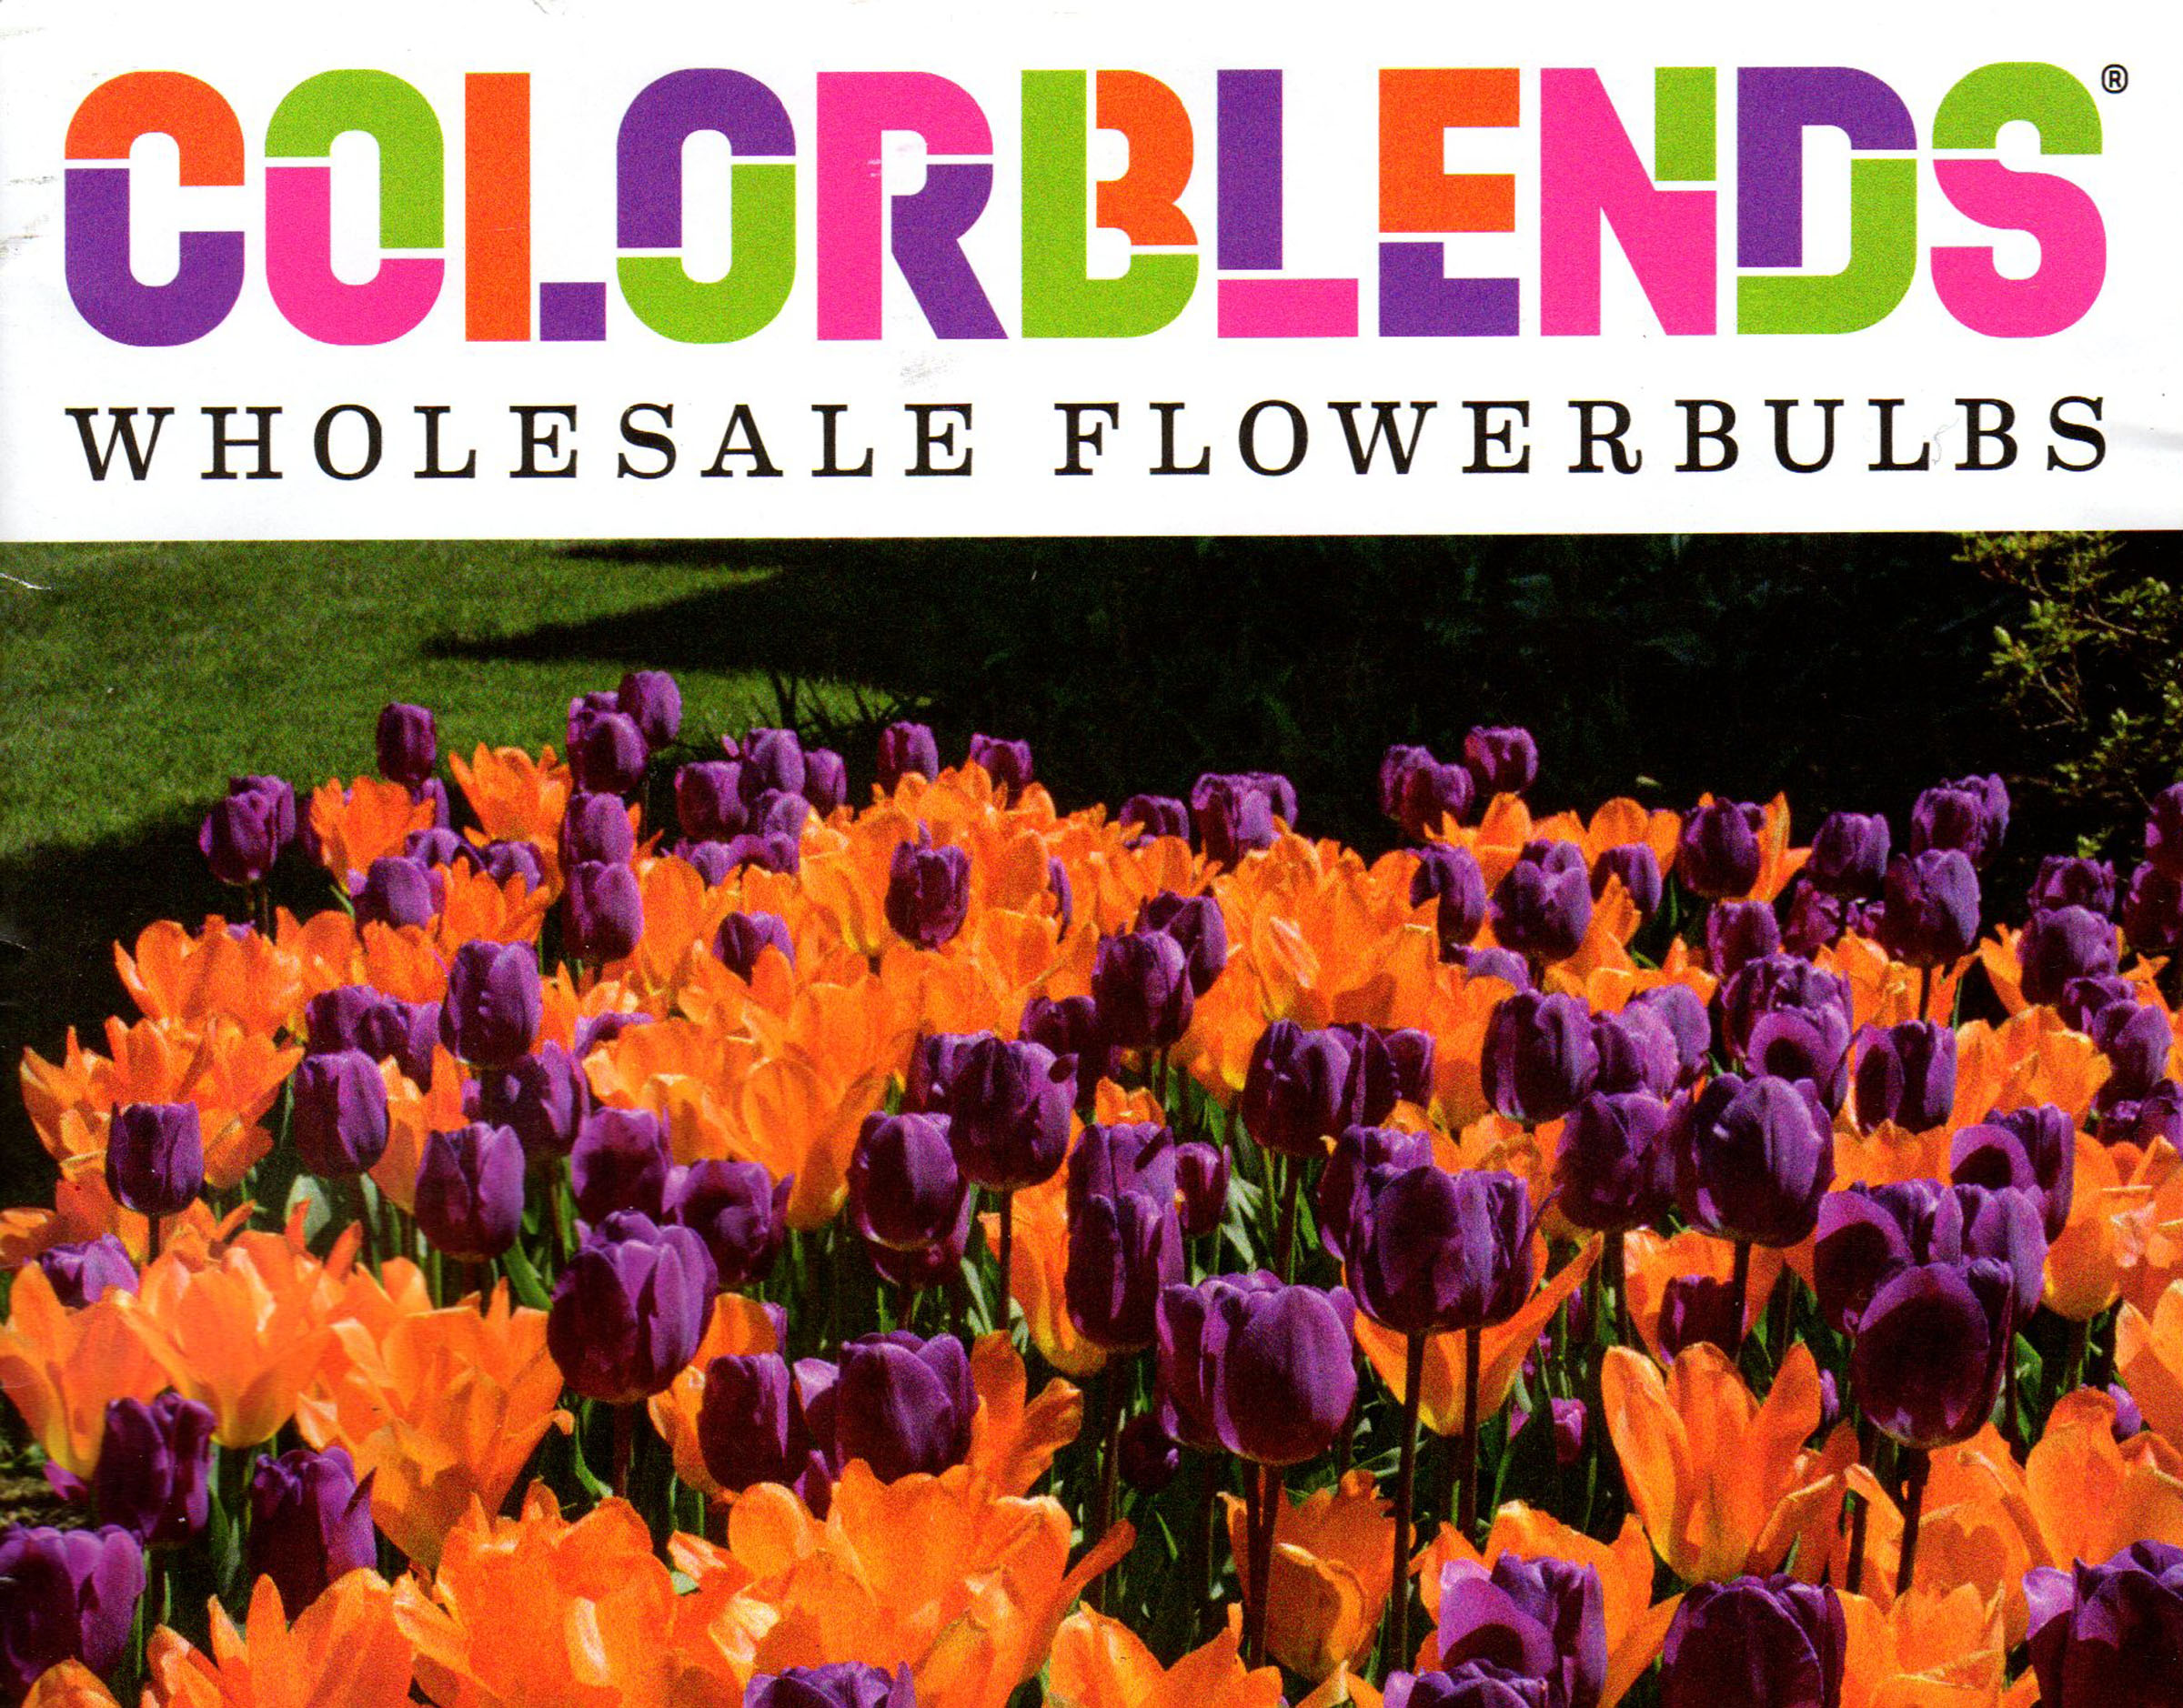 The cover of Colorblends's 2017 catalog